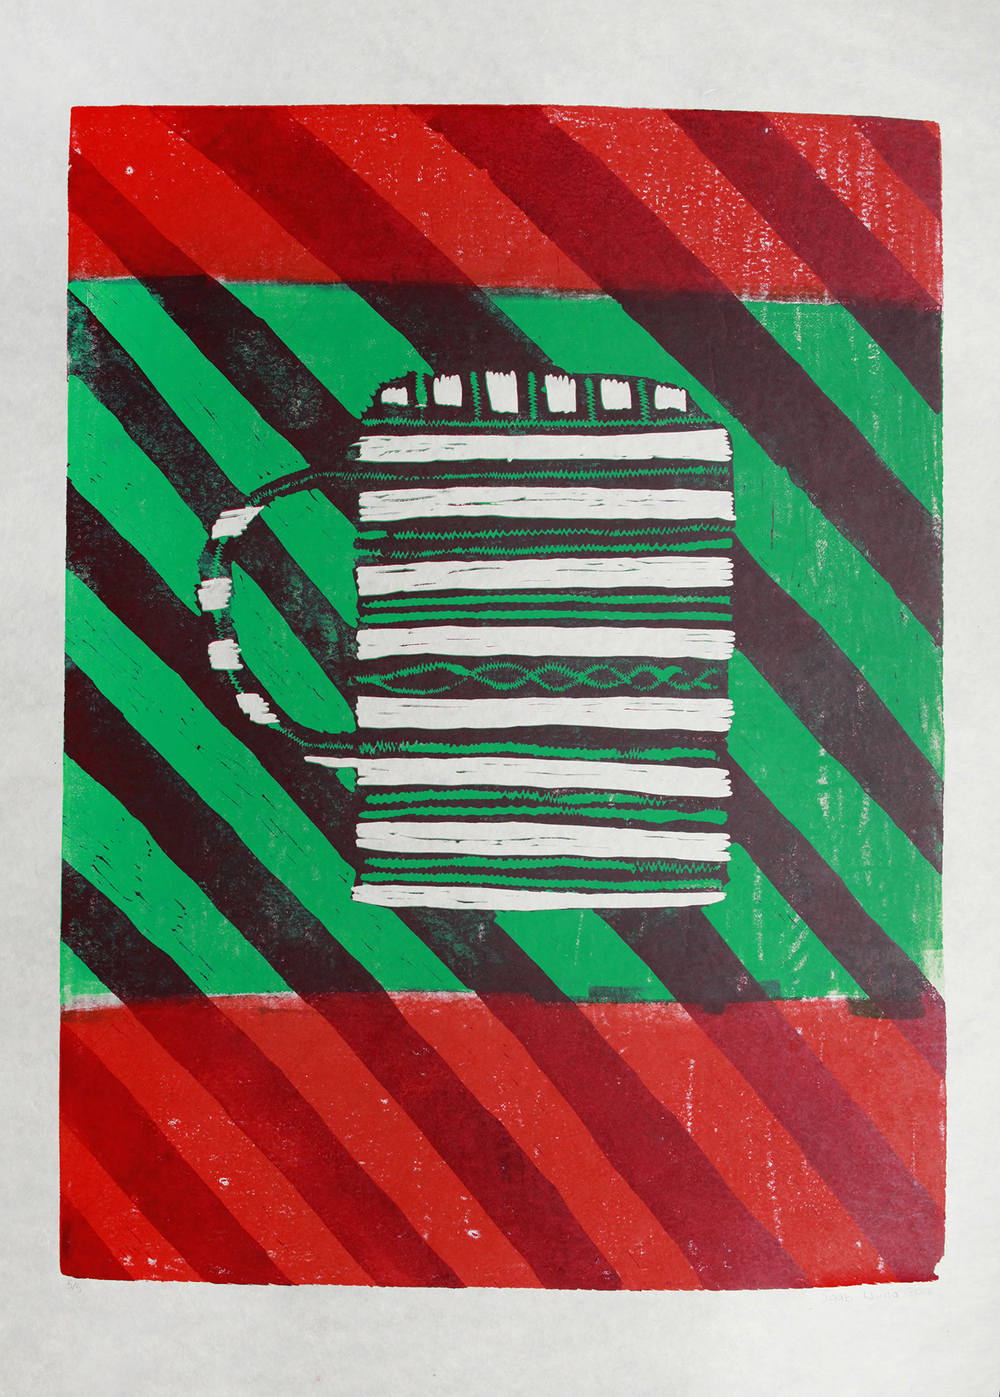 Achoo   Saaki Nuna  Two-Layer Linocut on Washi  21.5 x 31""